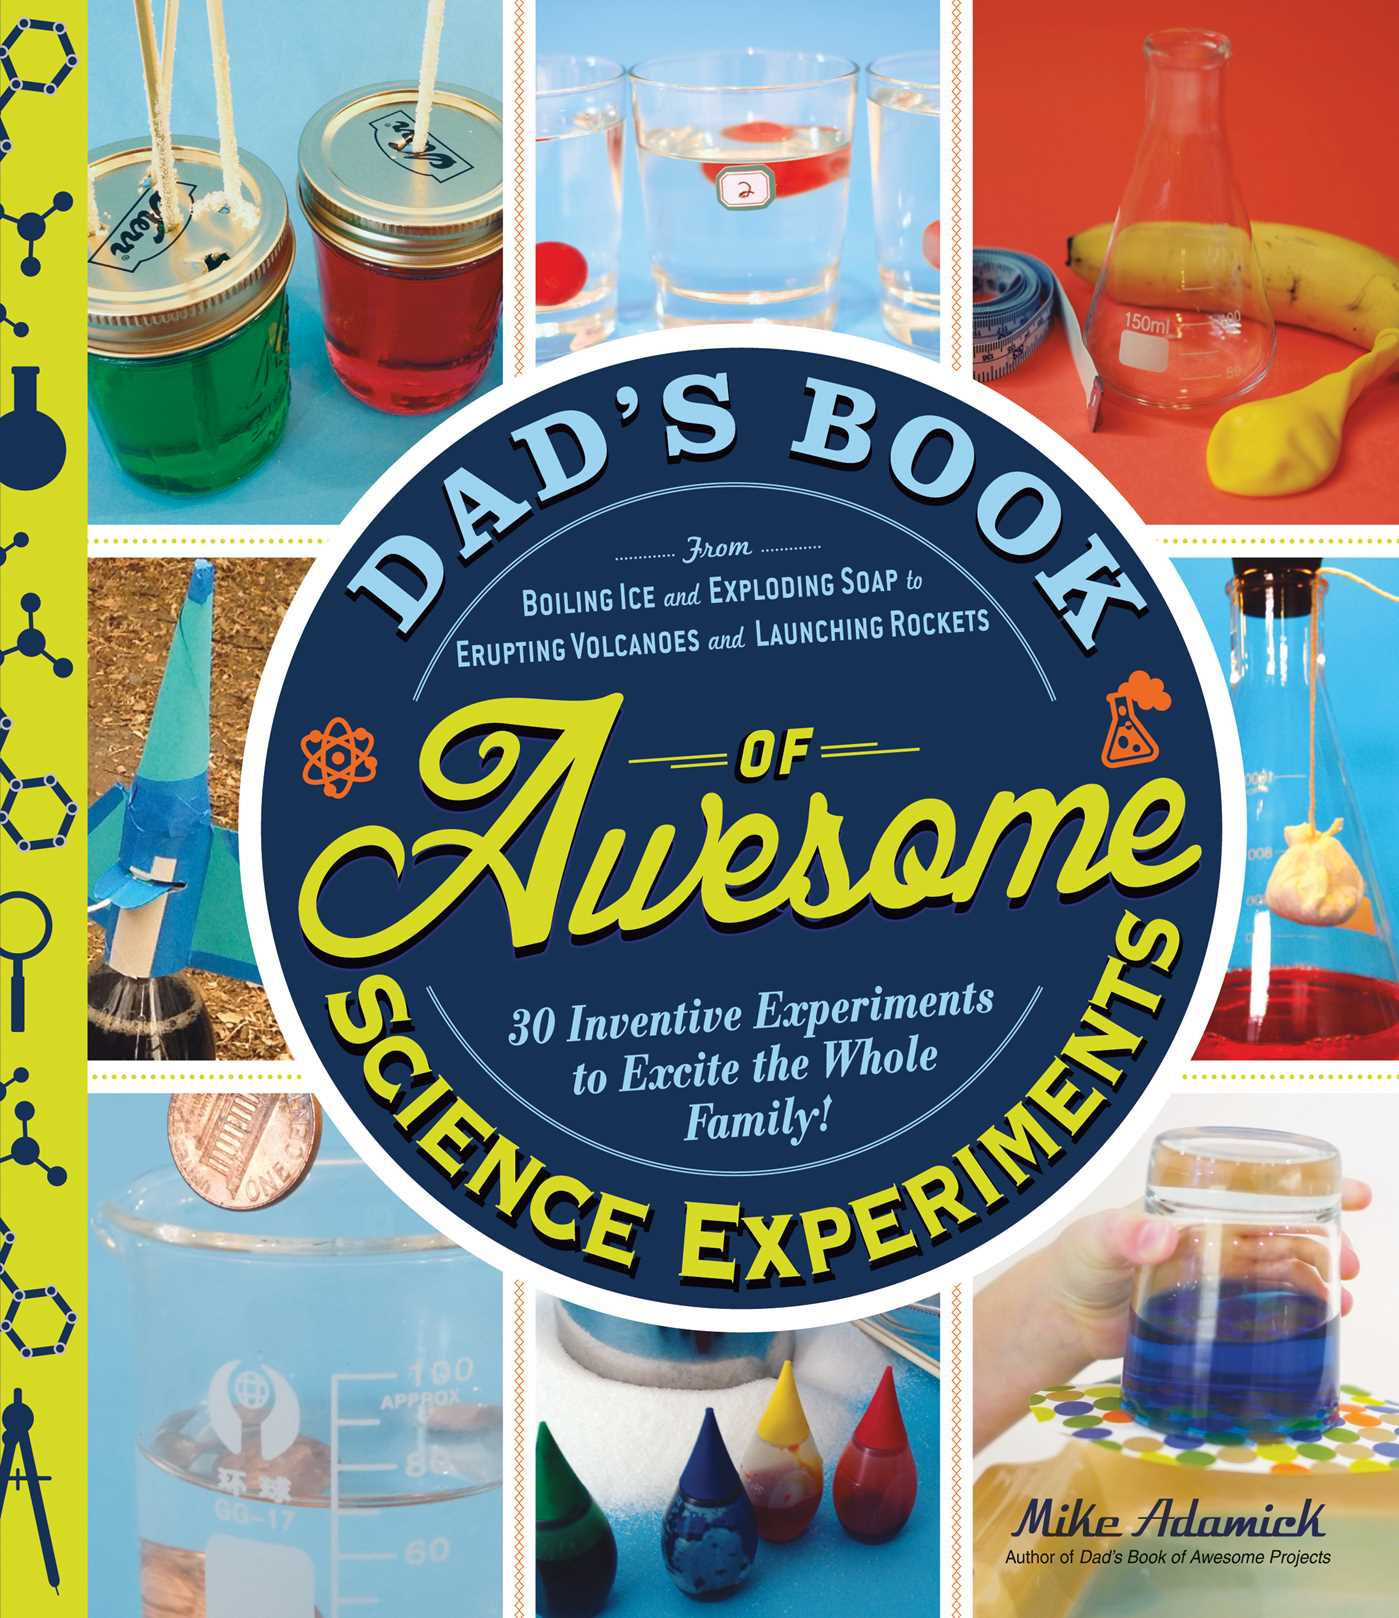 Dads book of awesome science experiments 9781440570773 hr